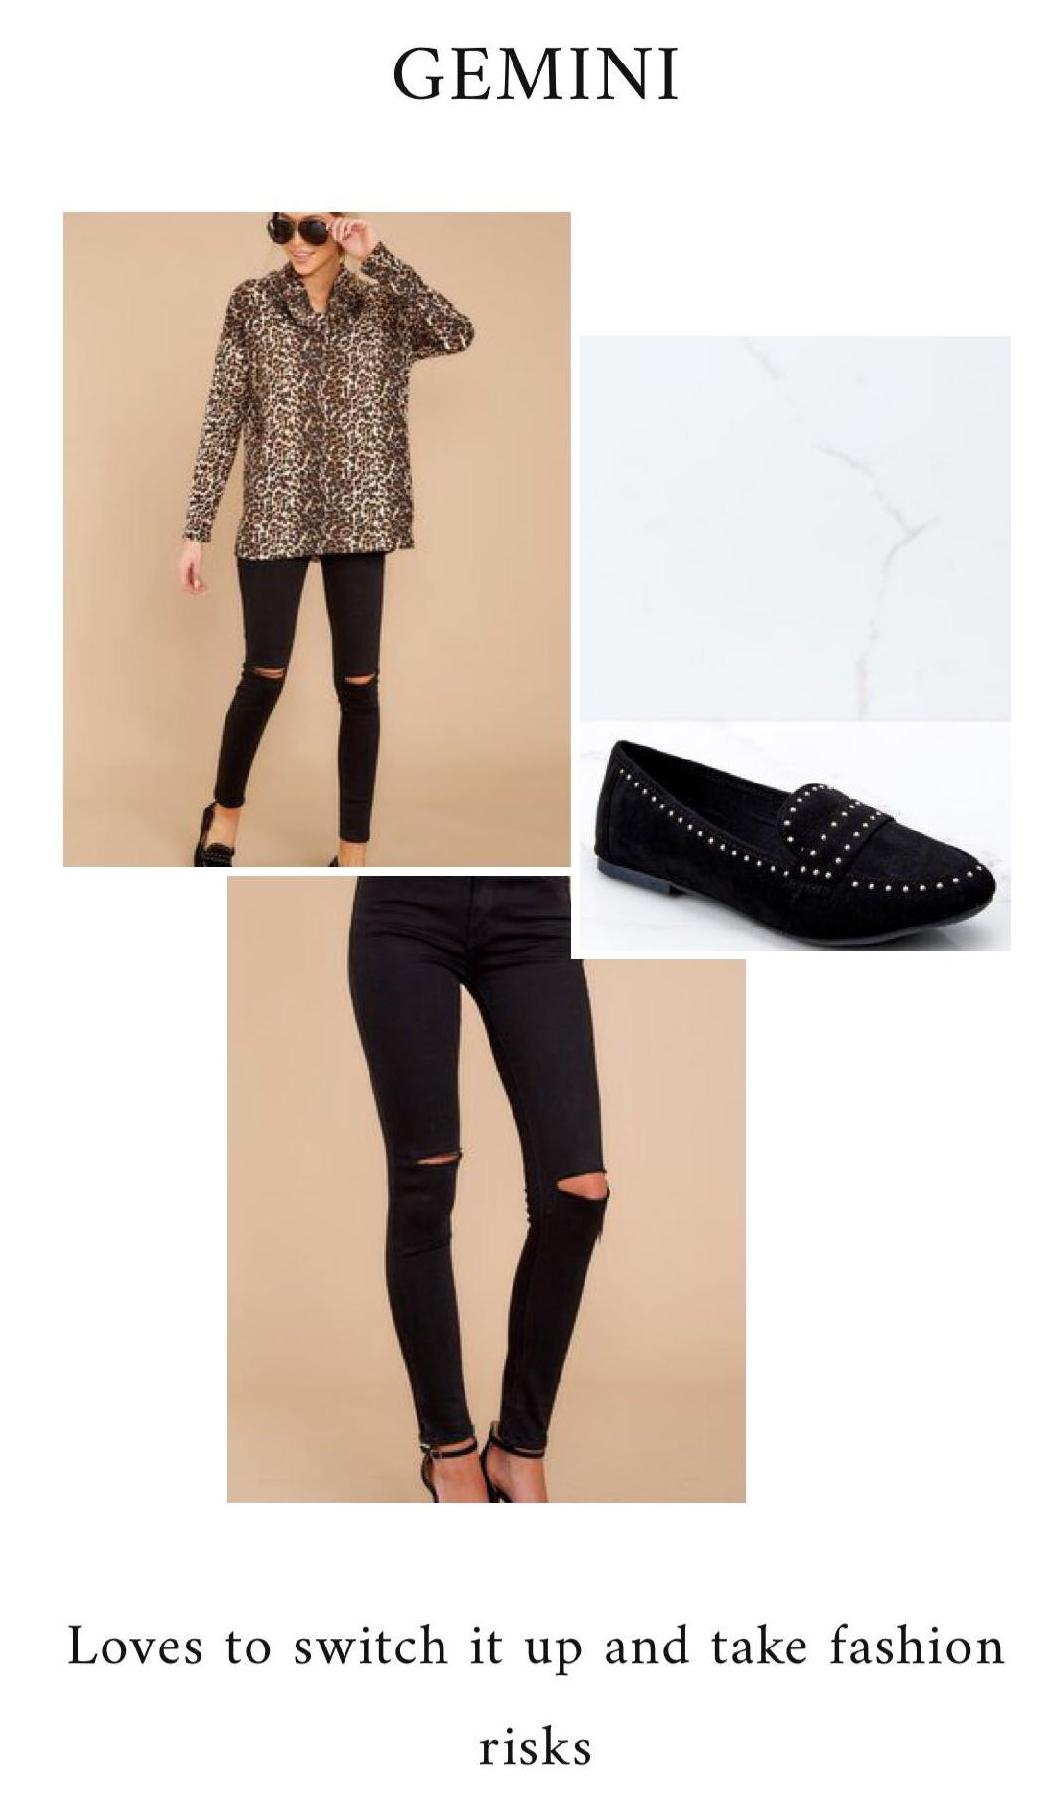 GET THE LOOK - Leopard Print TopBlack Skinny JeansSassy Black Loafers